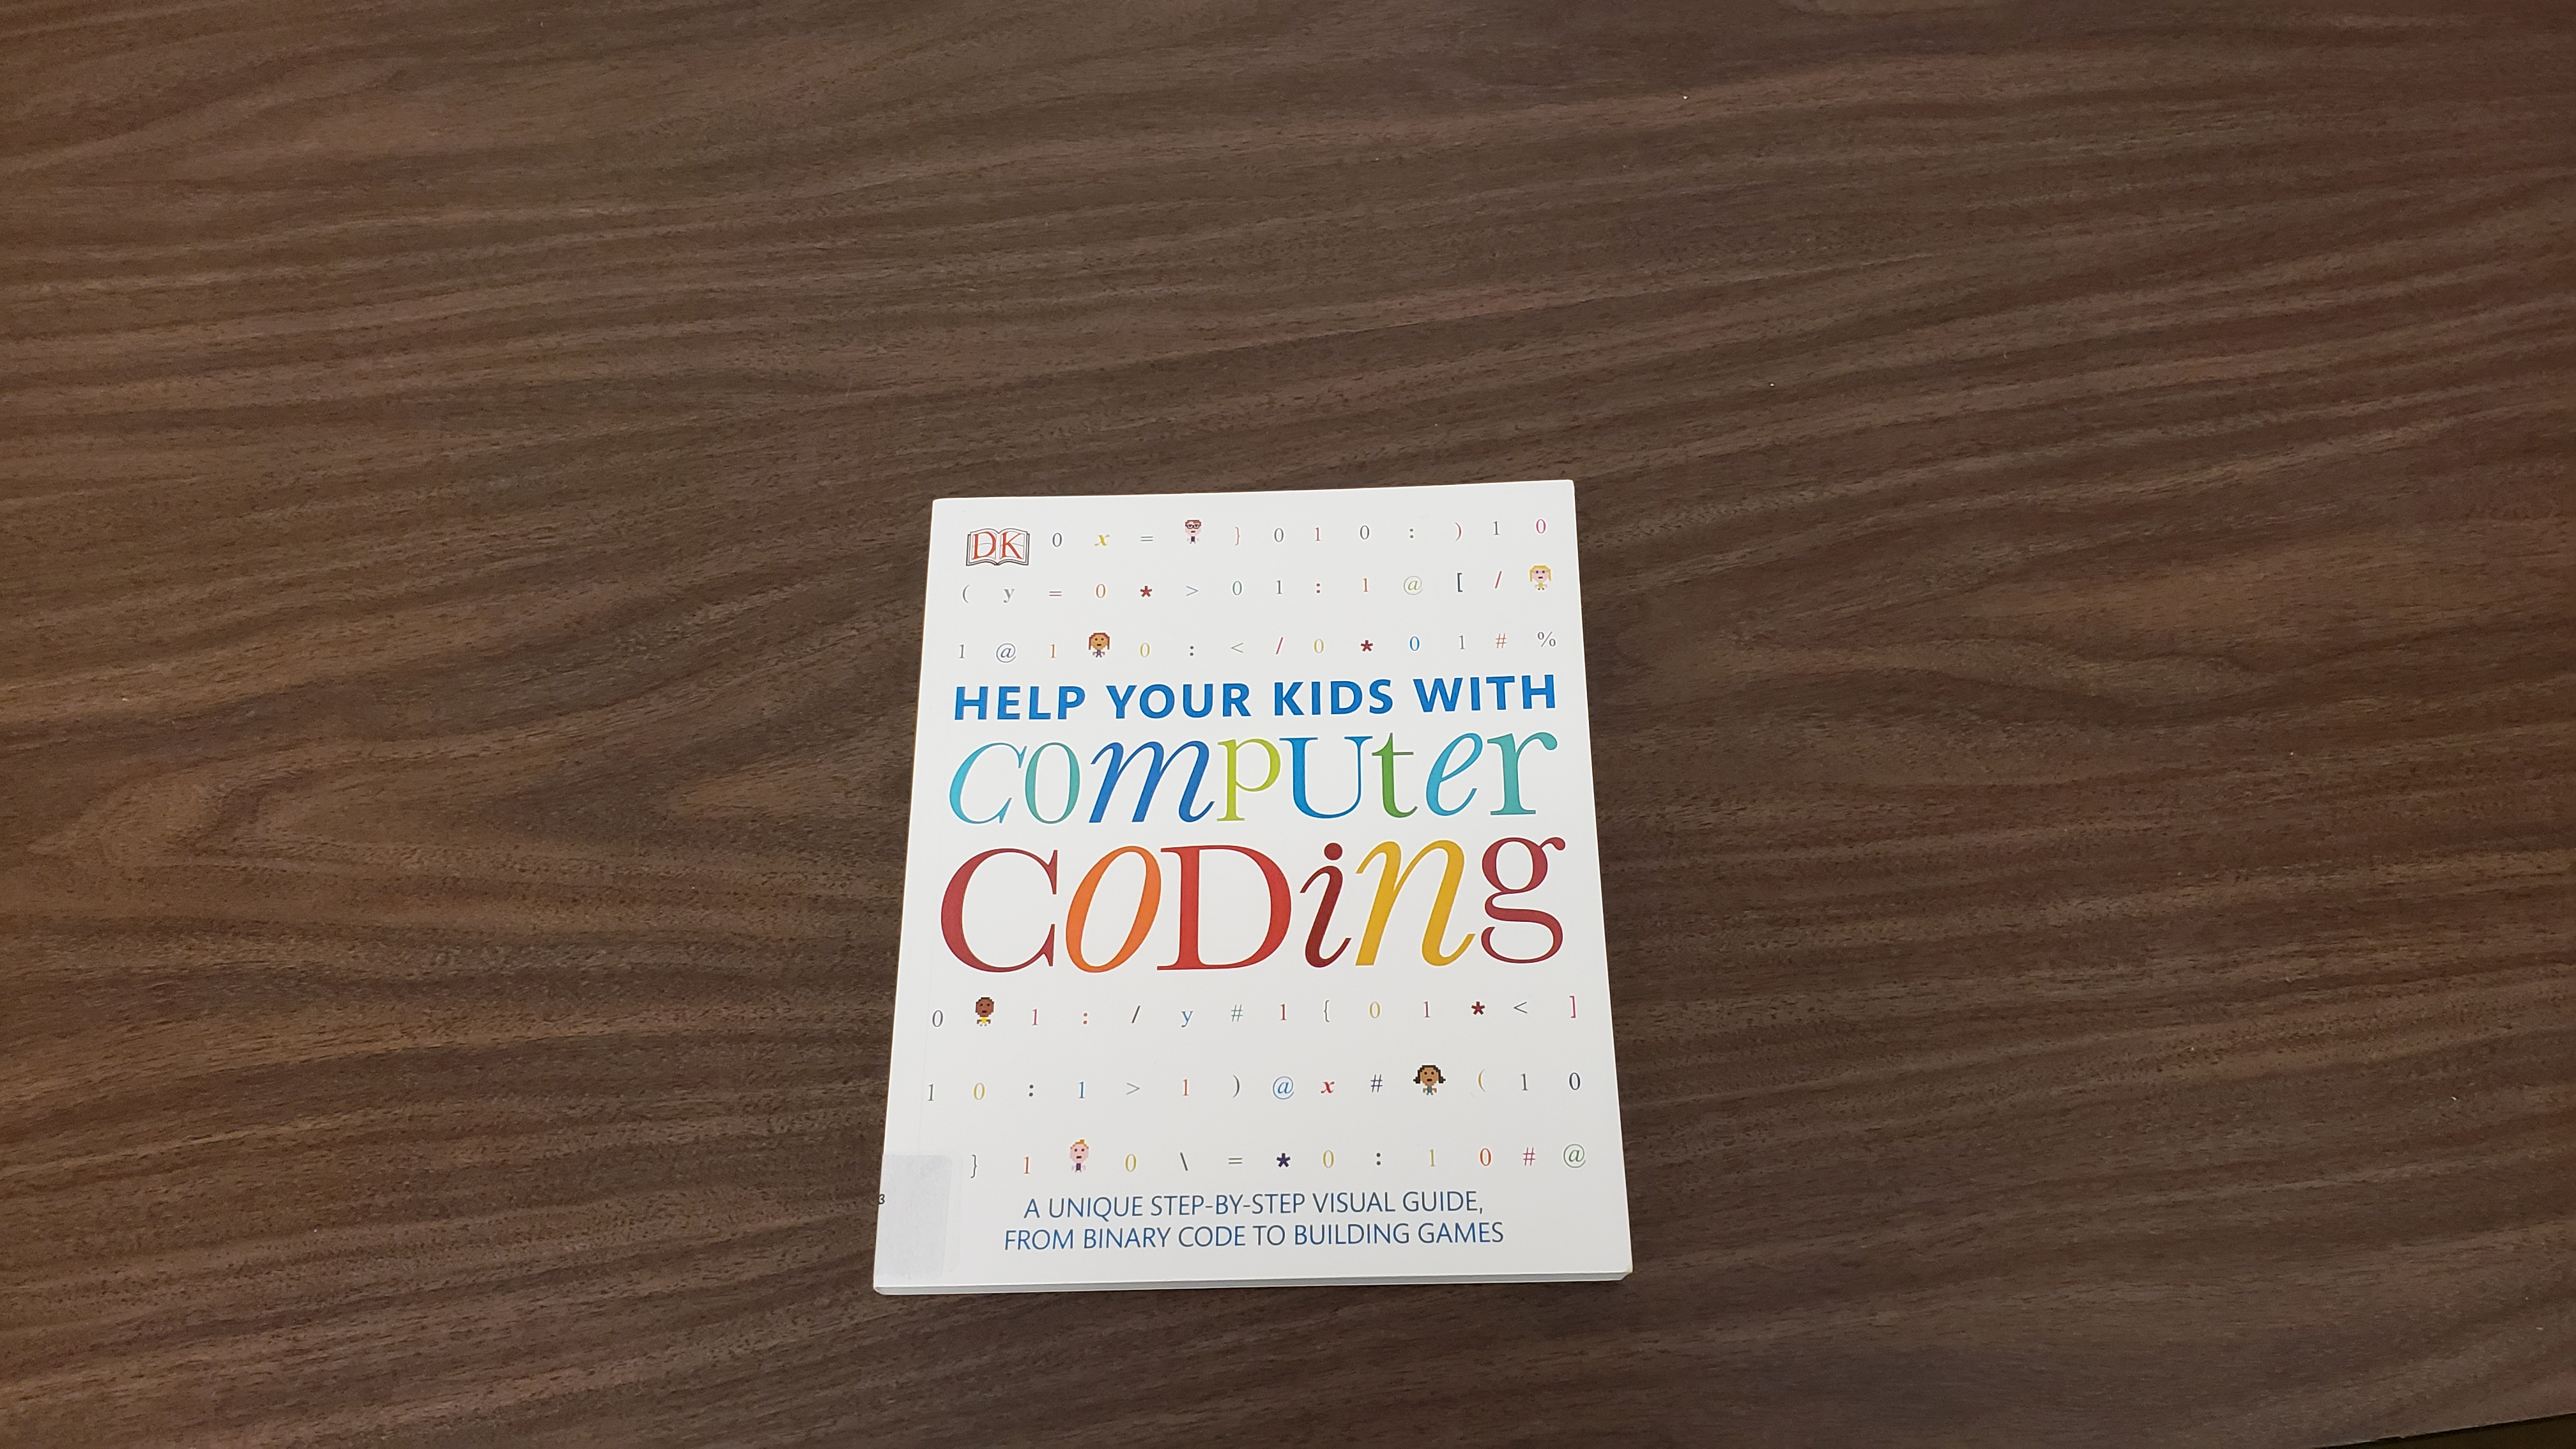 In addition to games and robots, we have a book to help with learning to code.